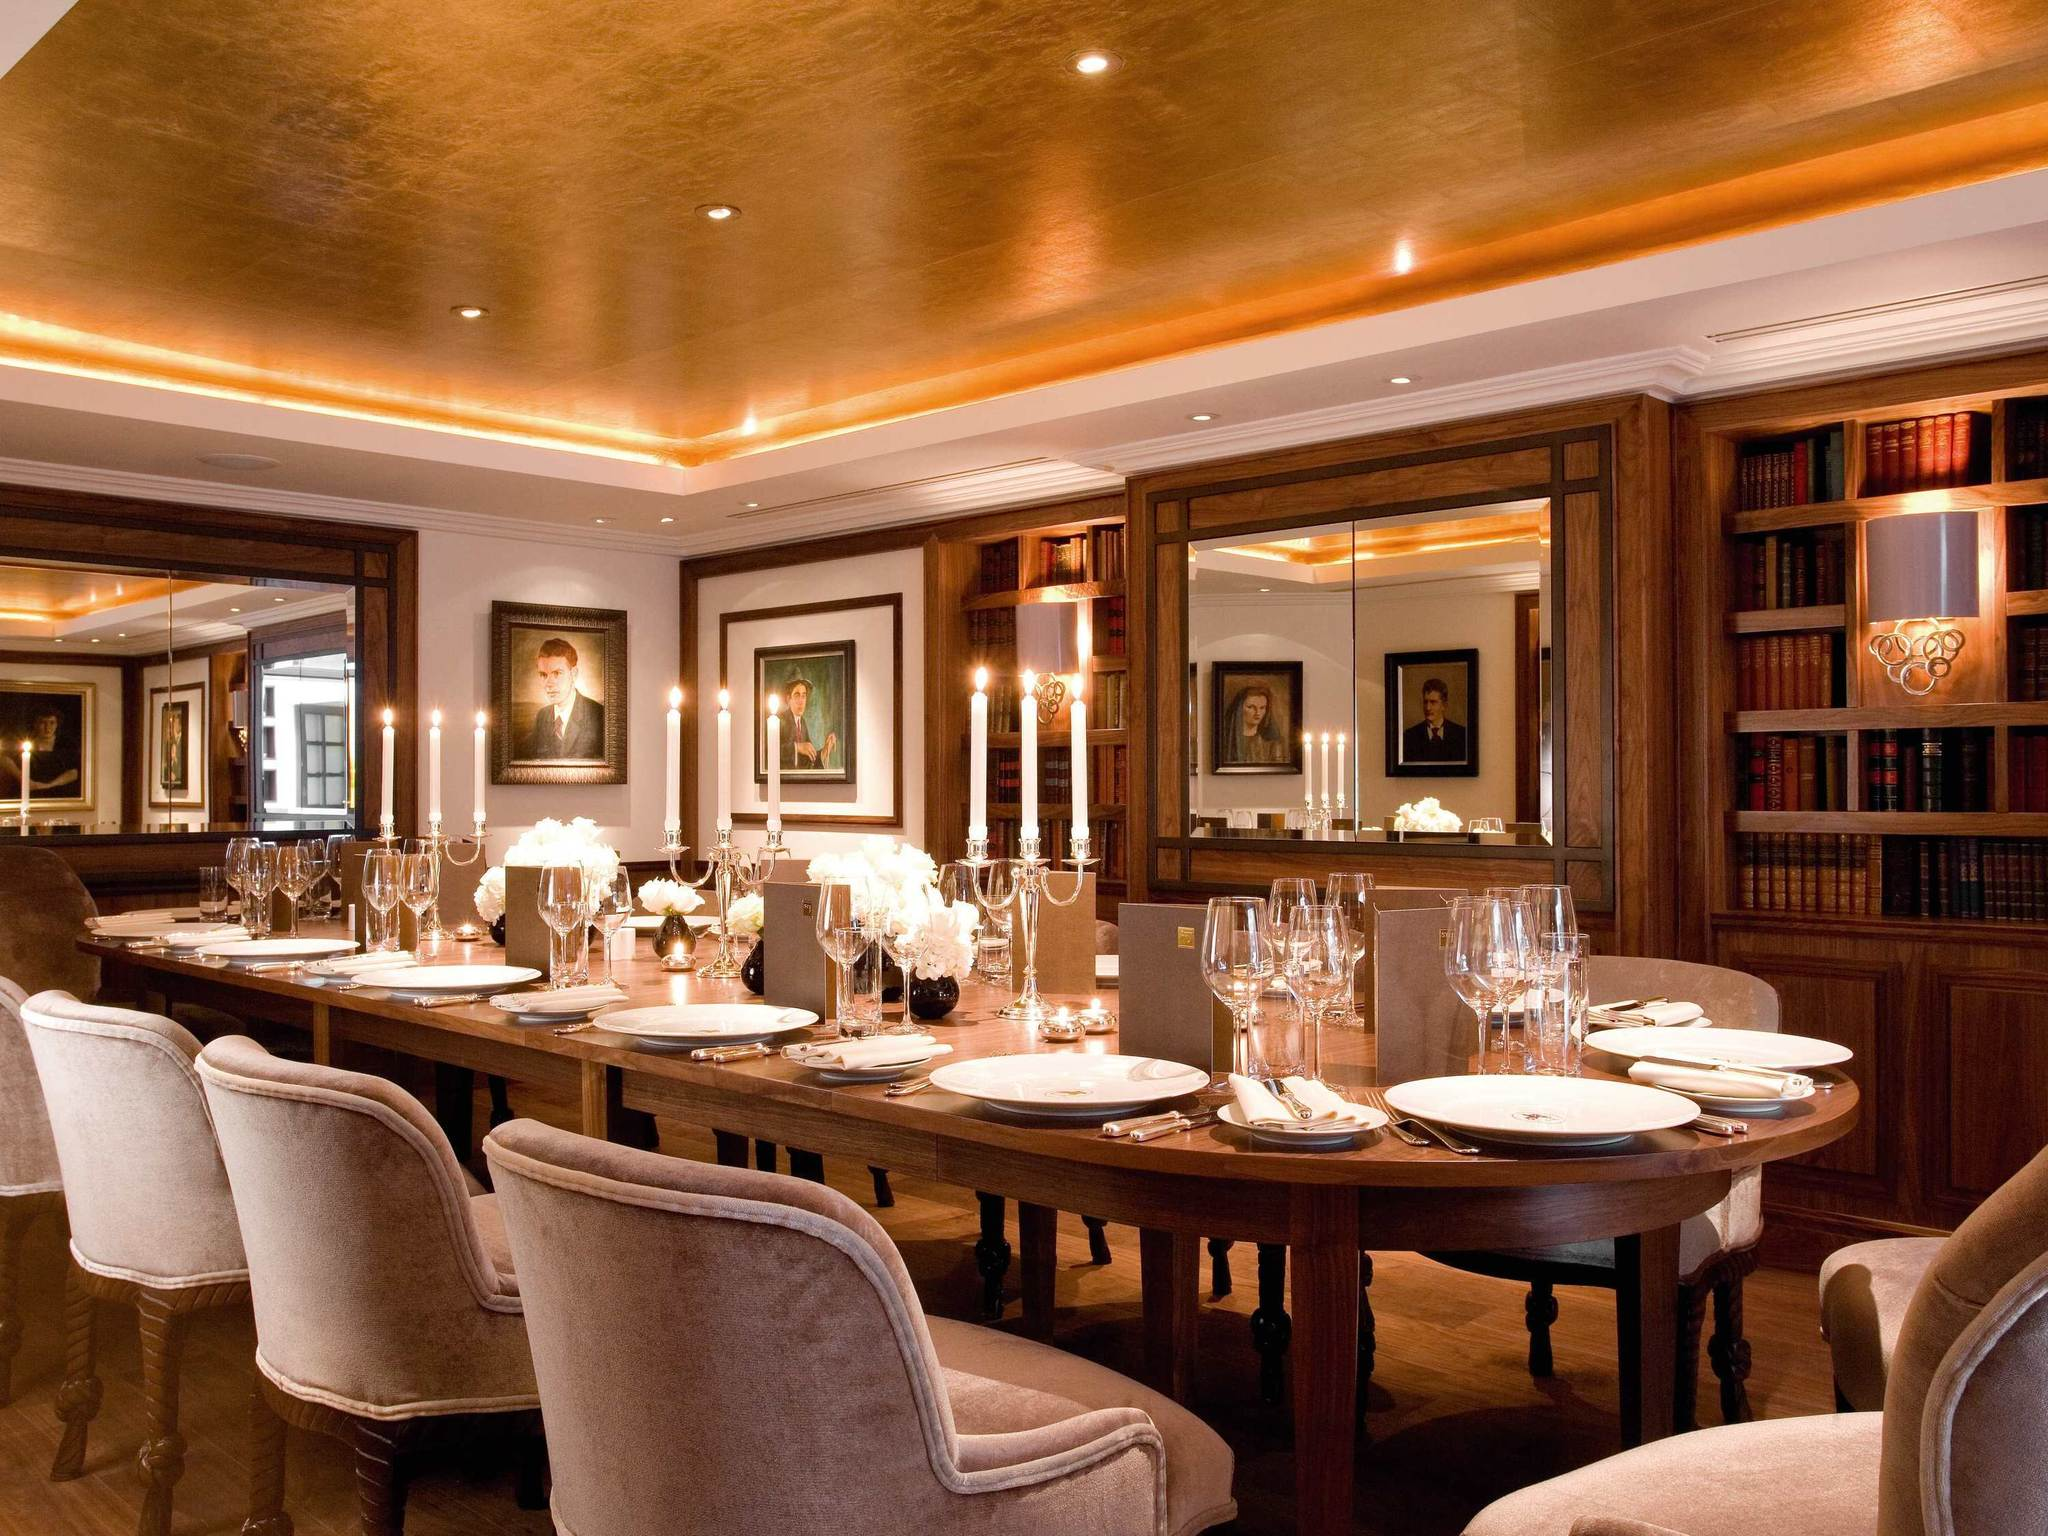 Fantastic Hotel In London St James Hotel And Club Small Luxury Hotel Of Largest Home Design Picture Inspirations Pitcheantrous